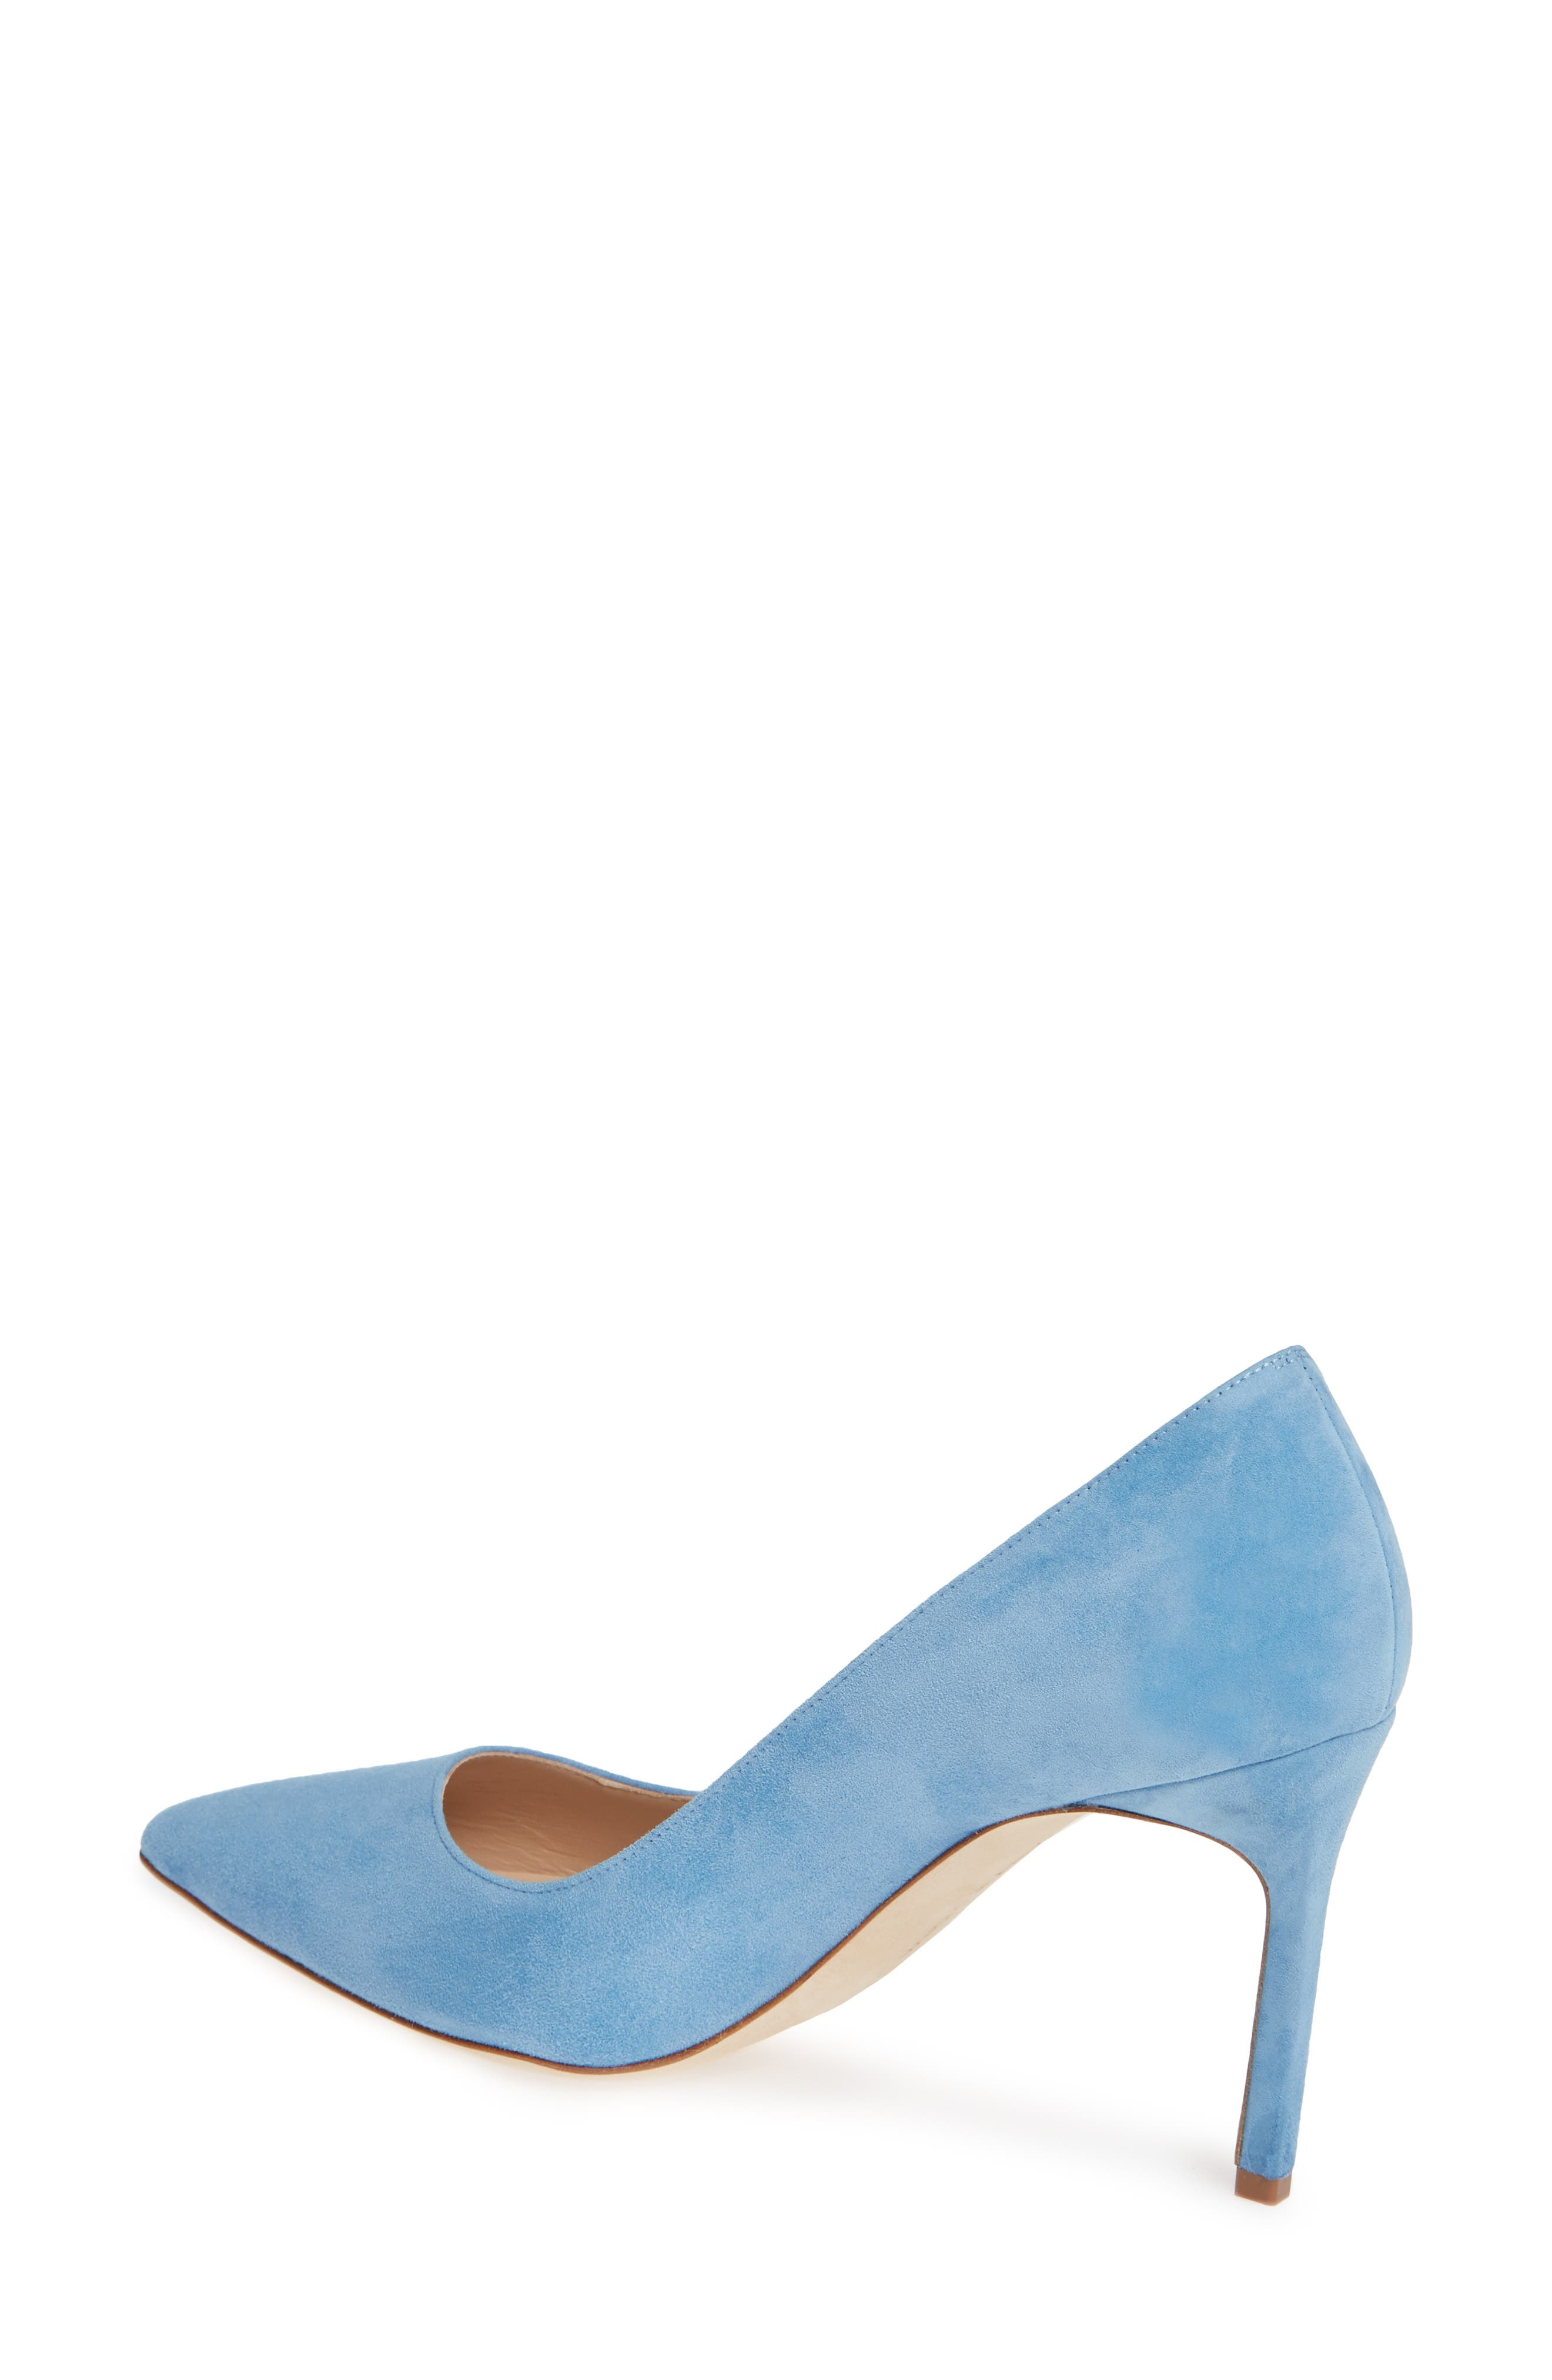 BB Pointy Toe Pump,                             Alternate thumbnail 2, color,                             POWDER BLUE SUEDE